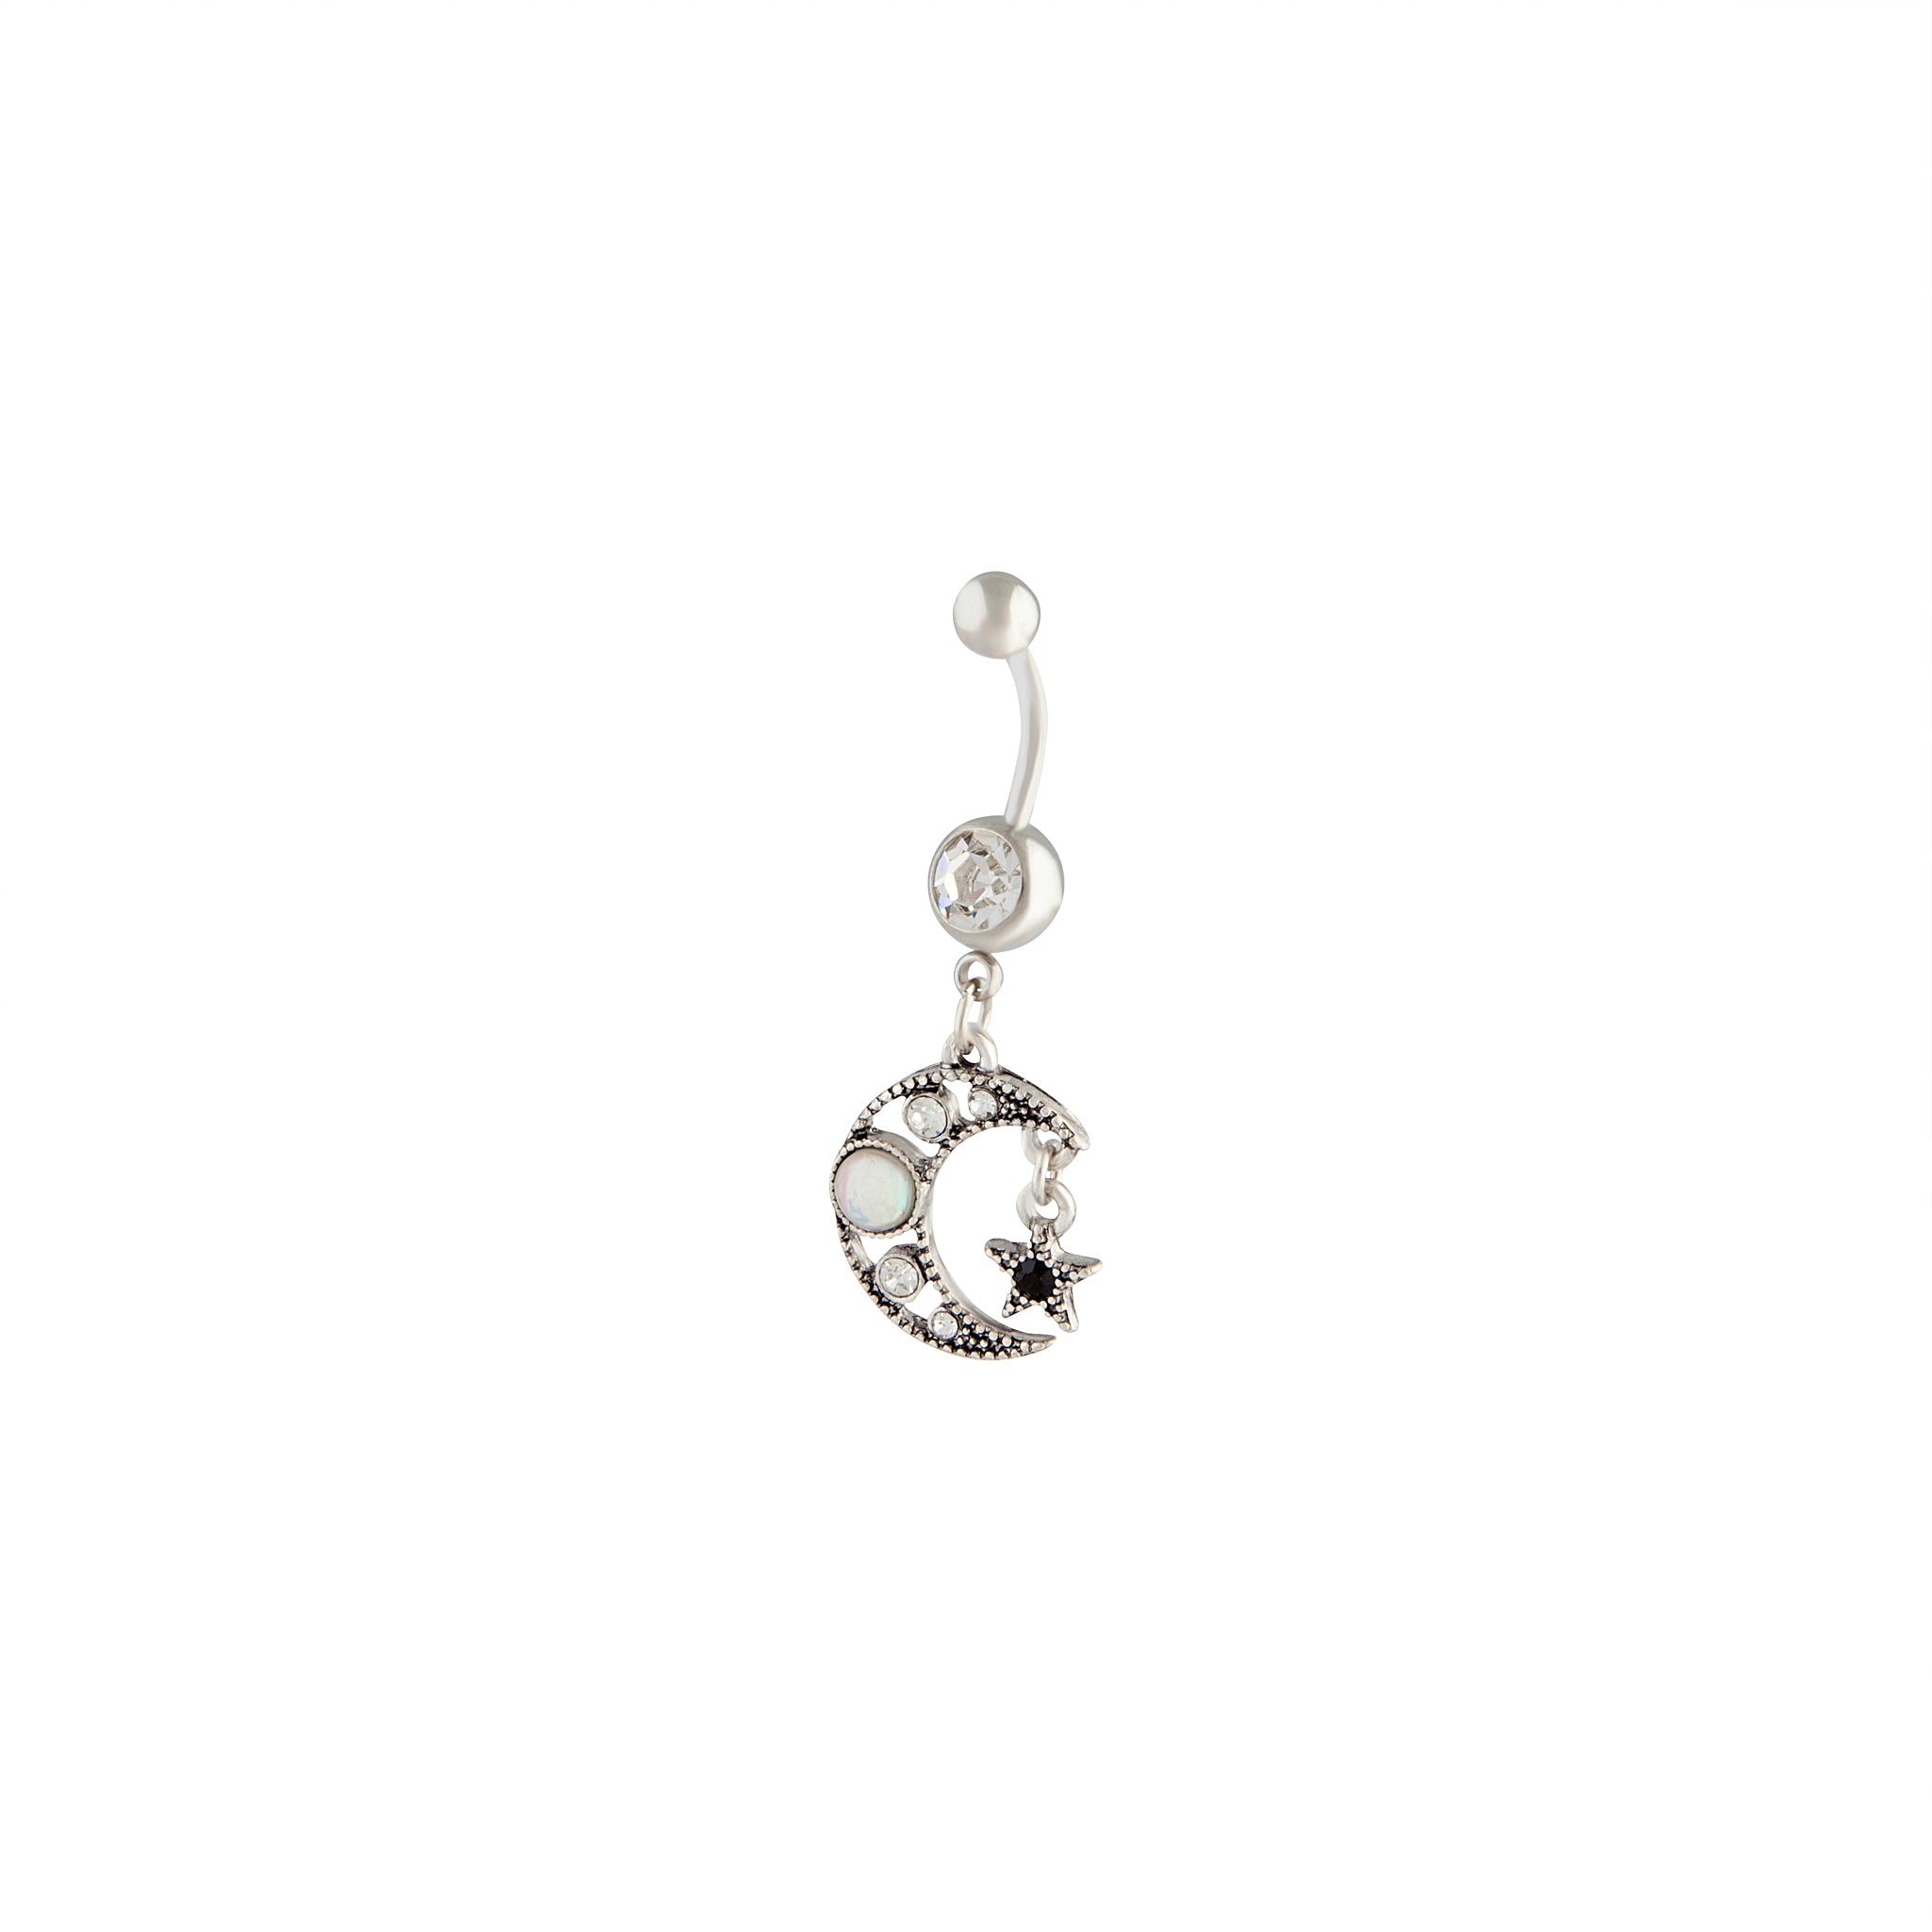 Surgical Steel Moon Star Belly Bar